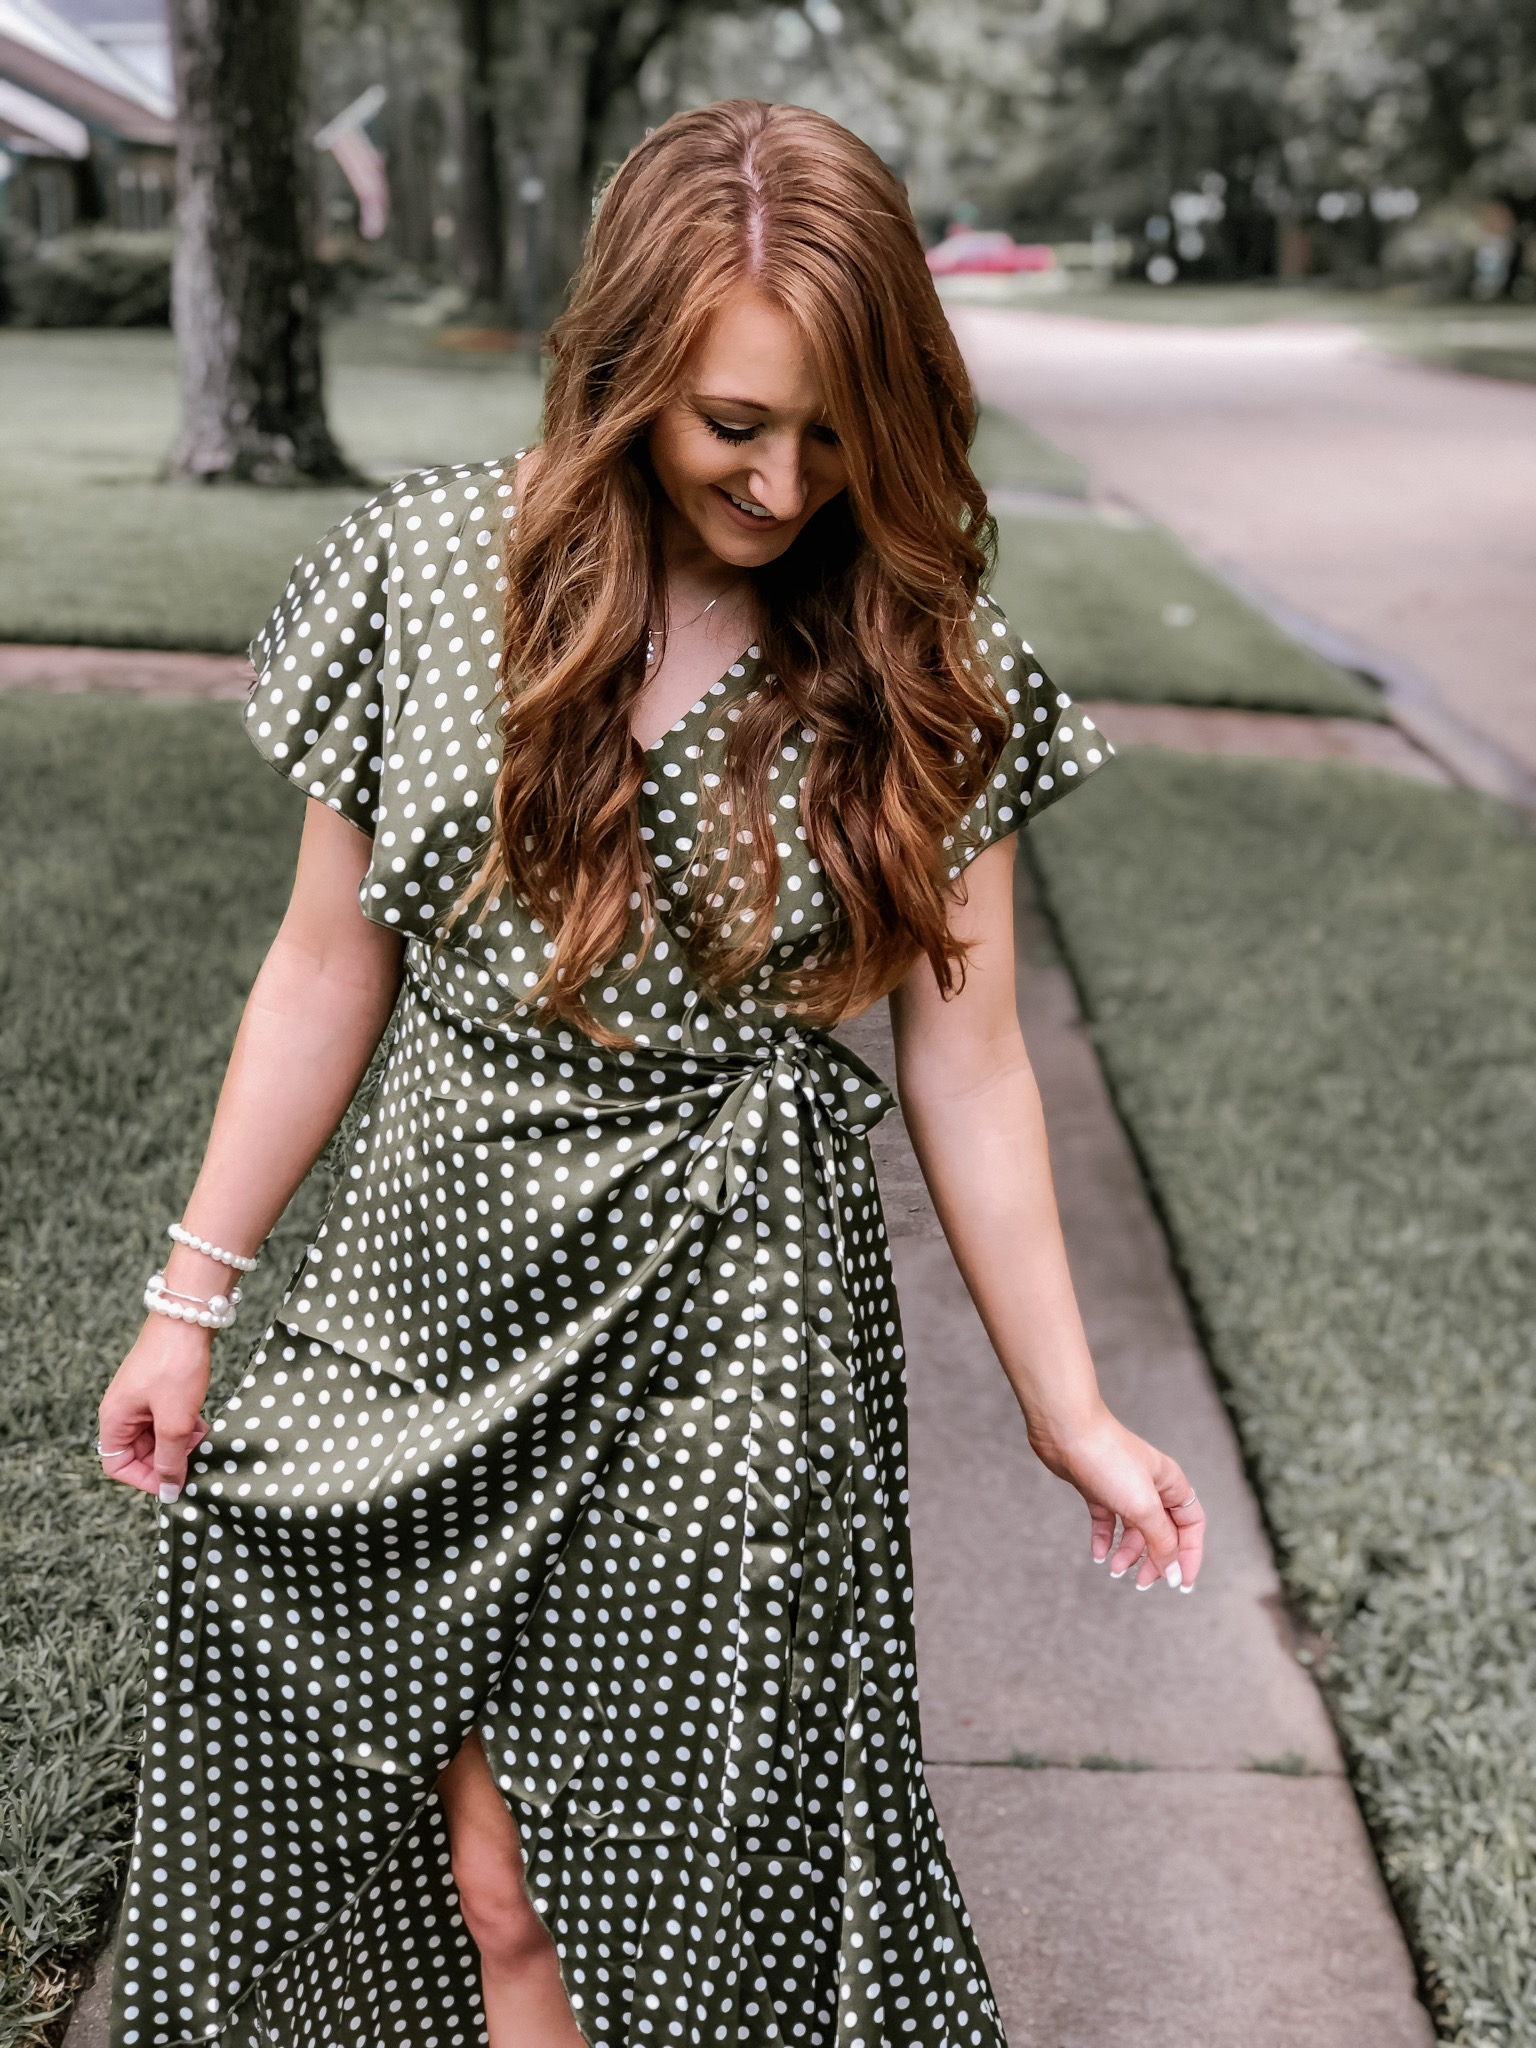 Finding Affordable Fashion on Amazon | Chaos and Coffee